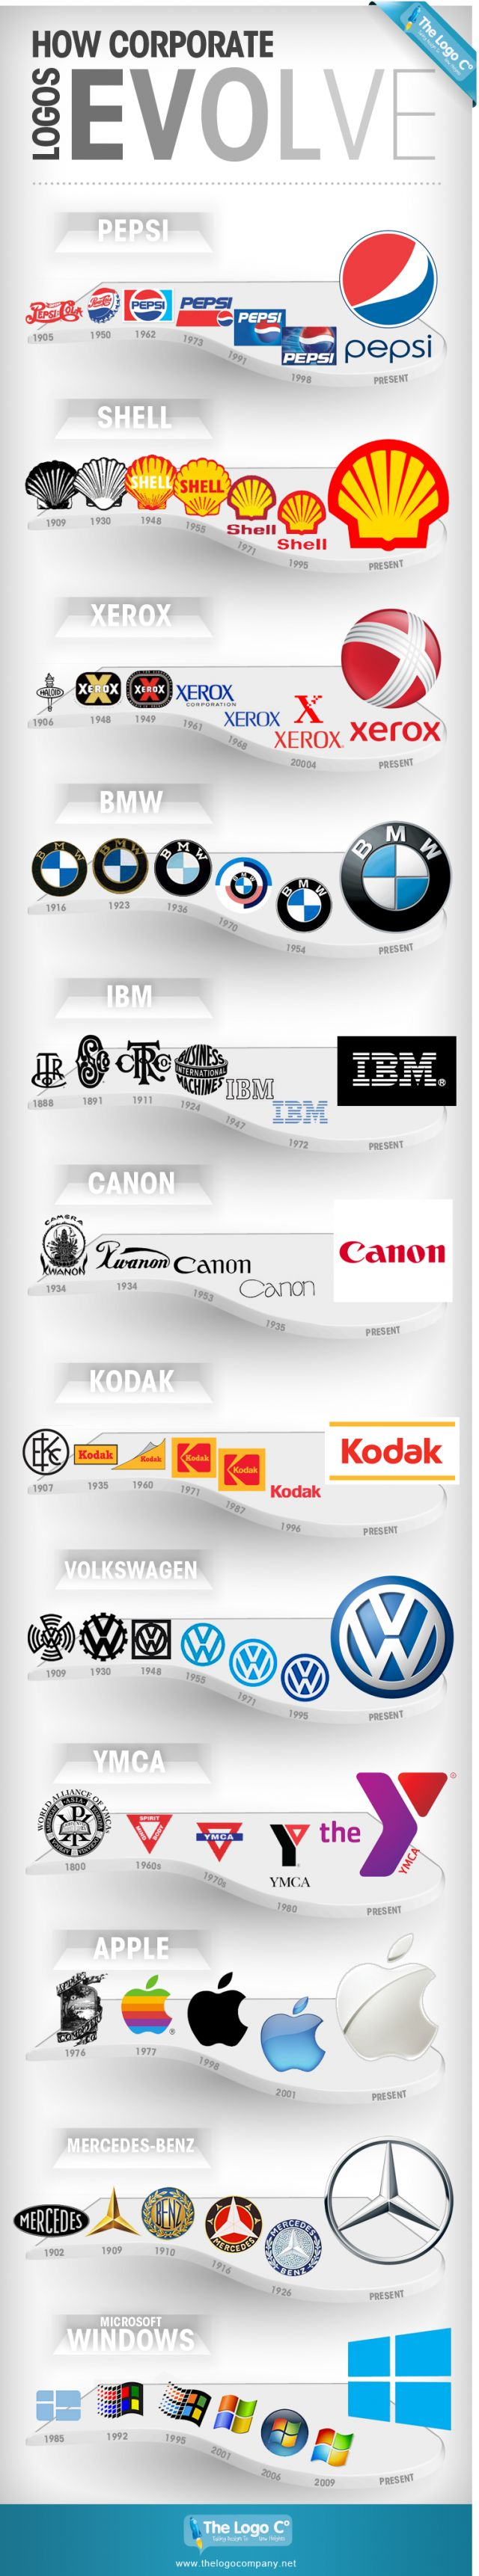 Does your logo need an update? Get ready for the new year!